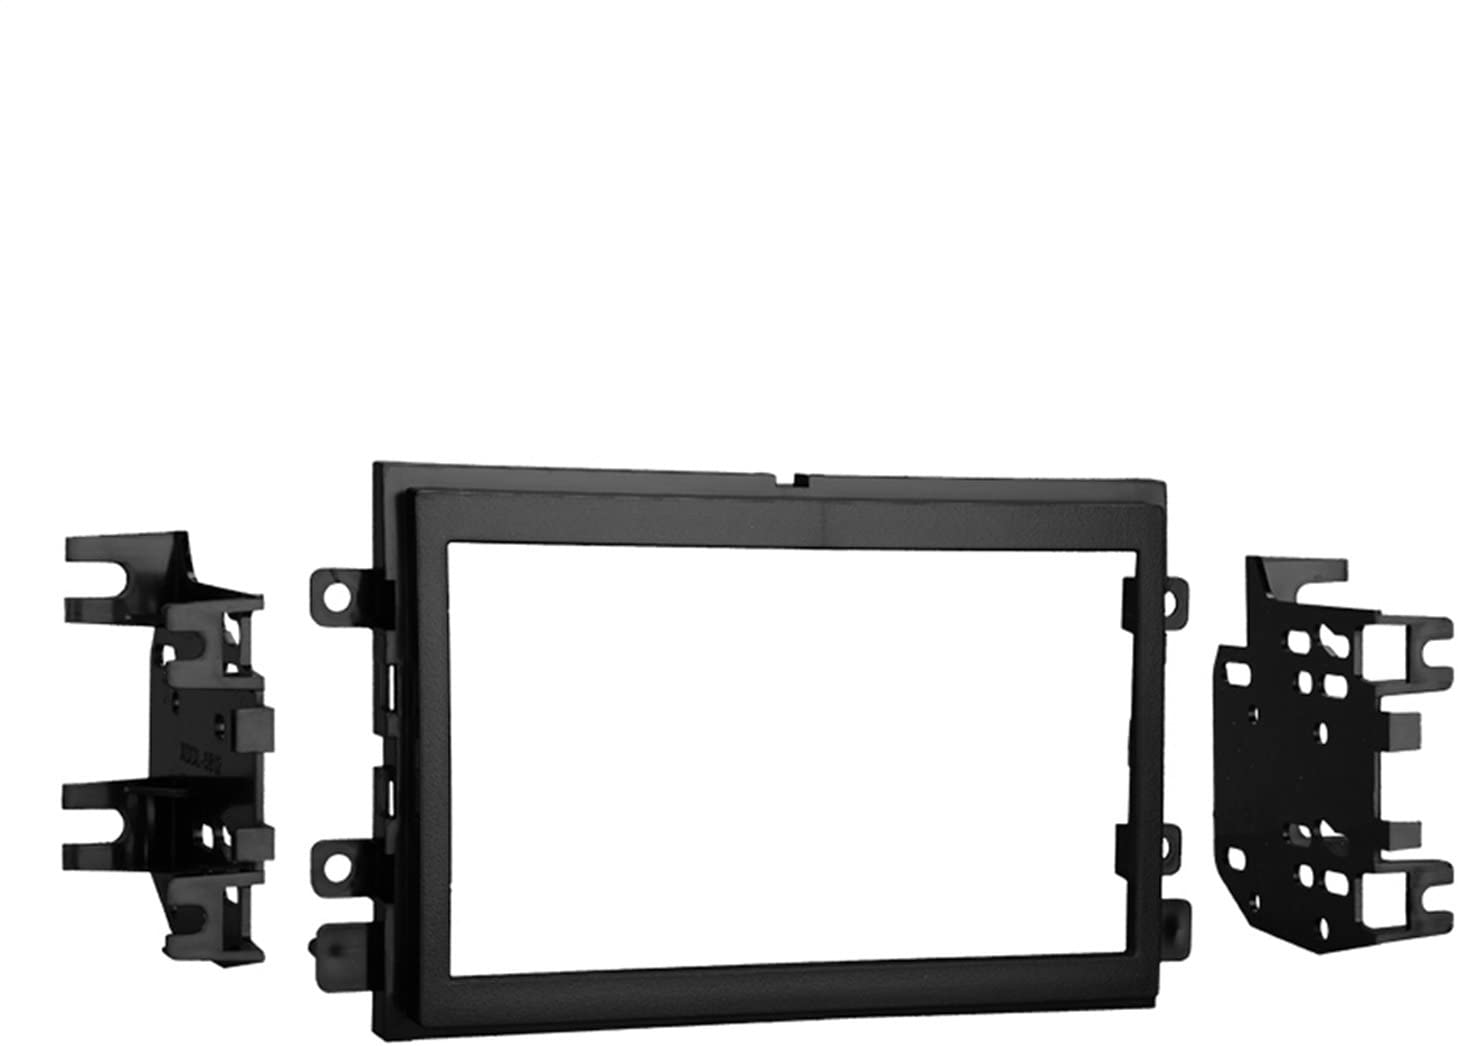 Metra 95-5812 Double DIN Installation Kit for Select 2004-up Ford Vehicles -Black